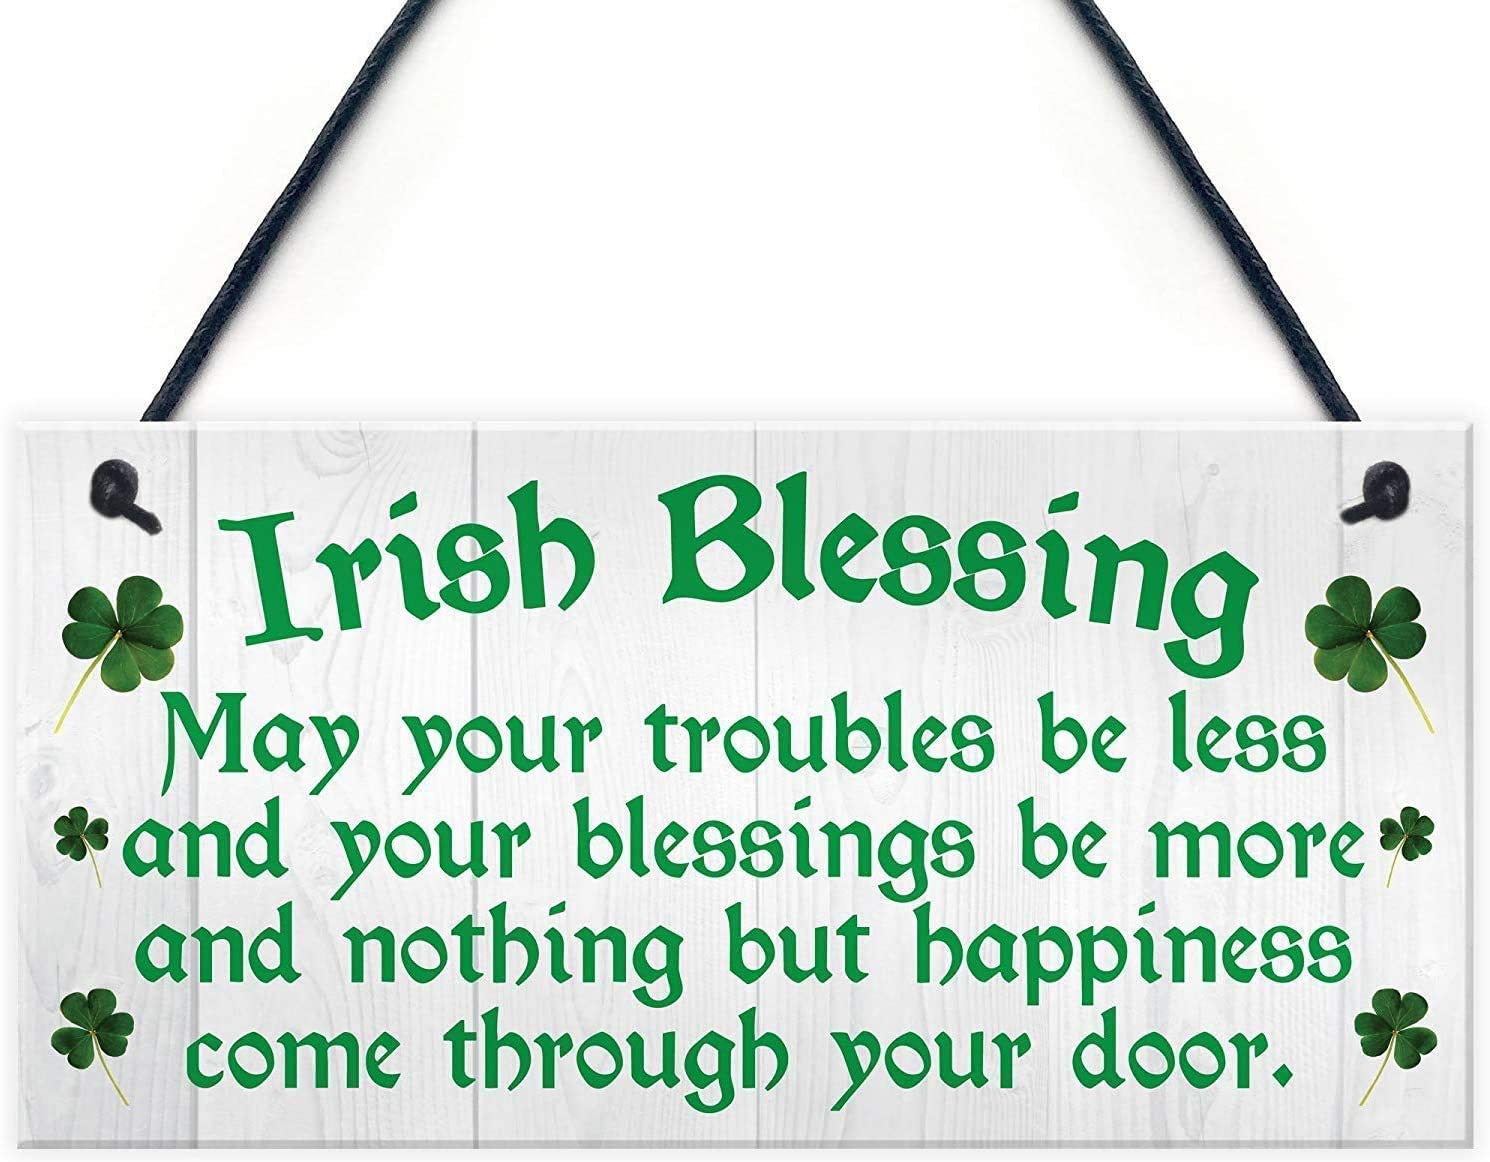 INNAPER Irish Blessing Happiness Friendship Wood Signs Gifts Plaque Home Decor Door Sign 12x6(49BW1998)